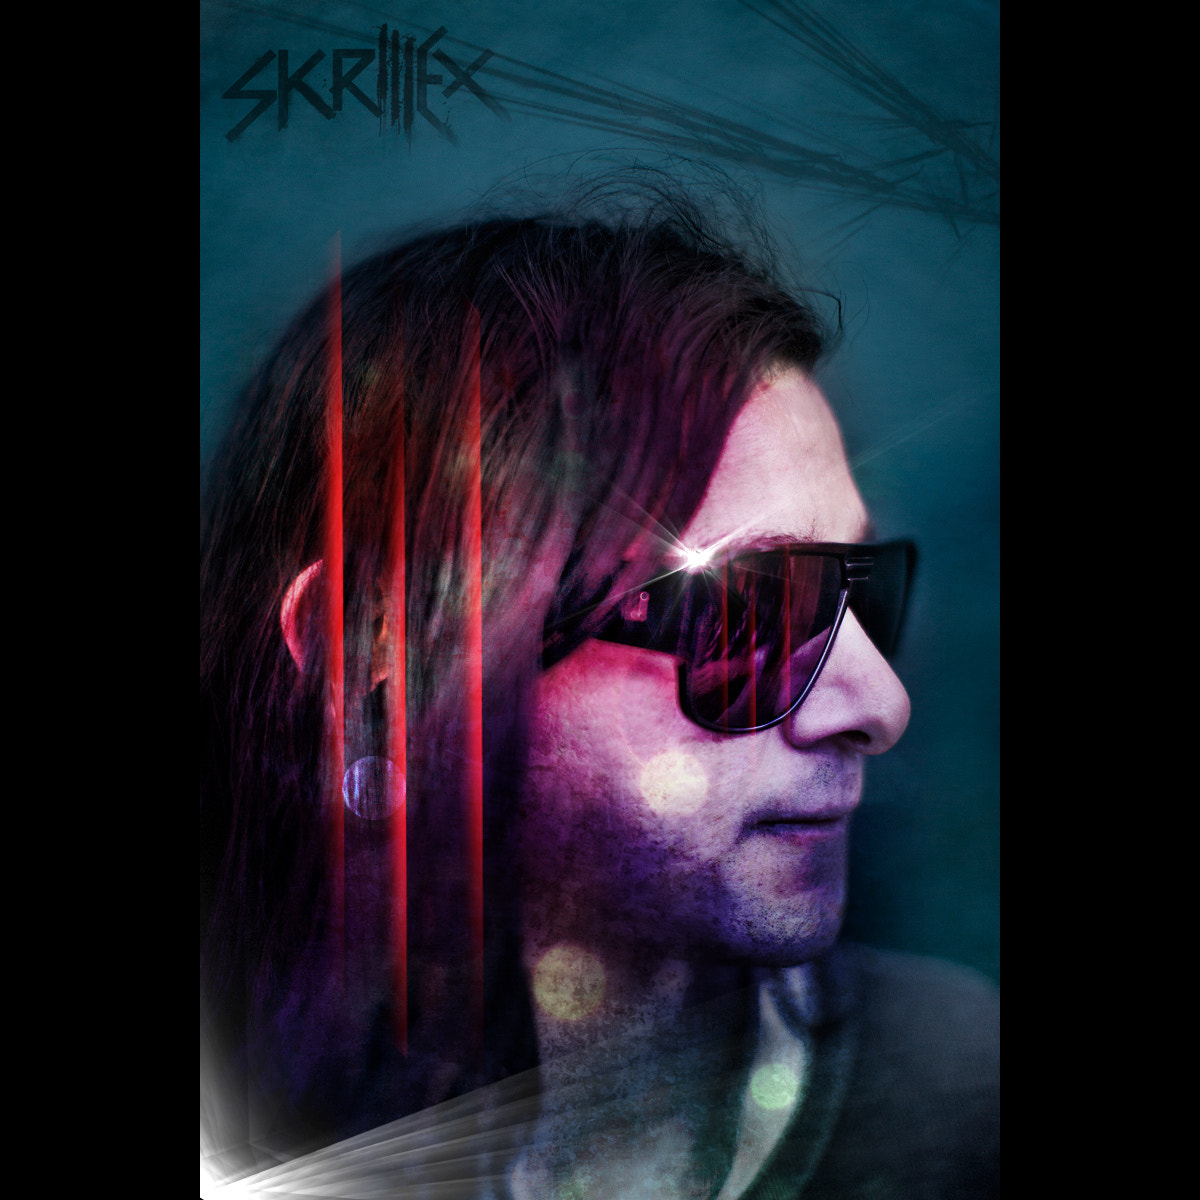 Photograph Yo Skrill Shop It Hard! Sonny Moore (aka Skrillex) Retouch digital painting by JC Plunkett on 500px